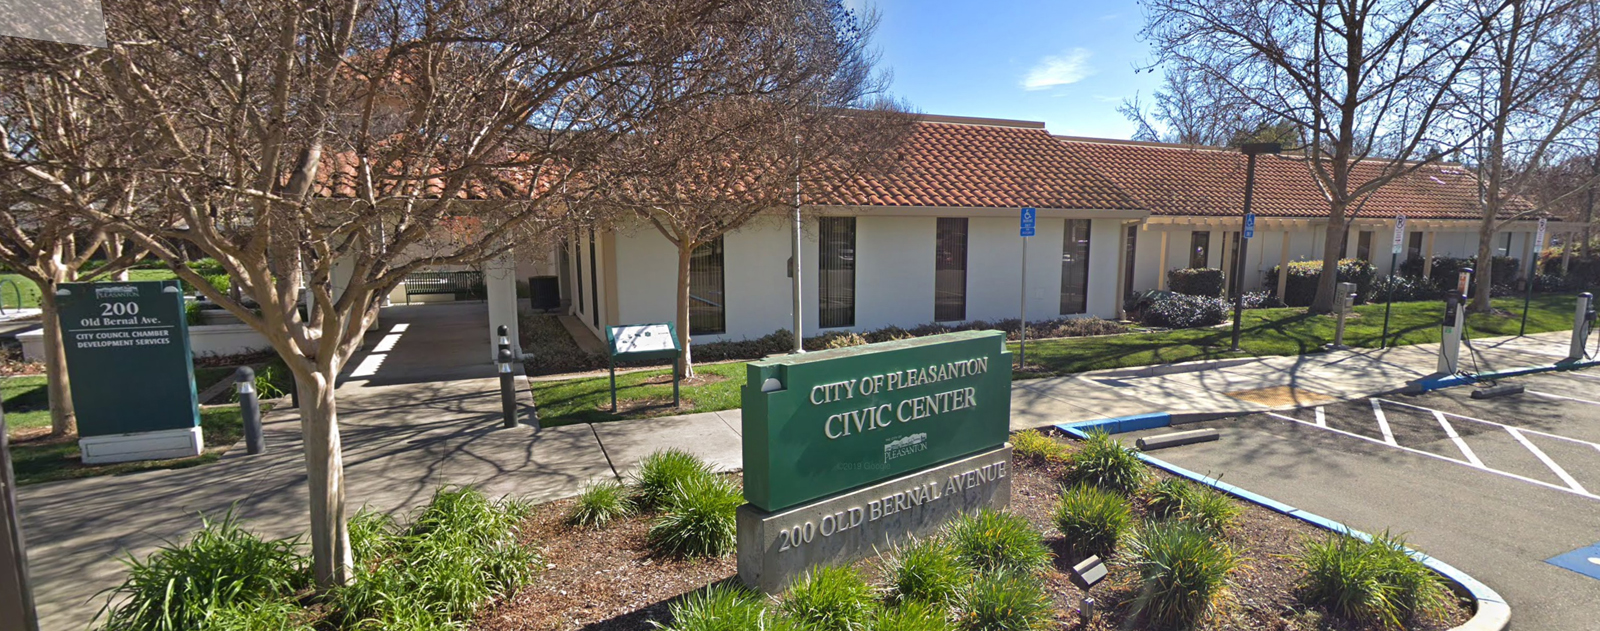 City of Pleasanton Civic Center, 200 Bernal Ave, City of Pleasanton